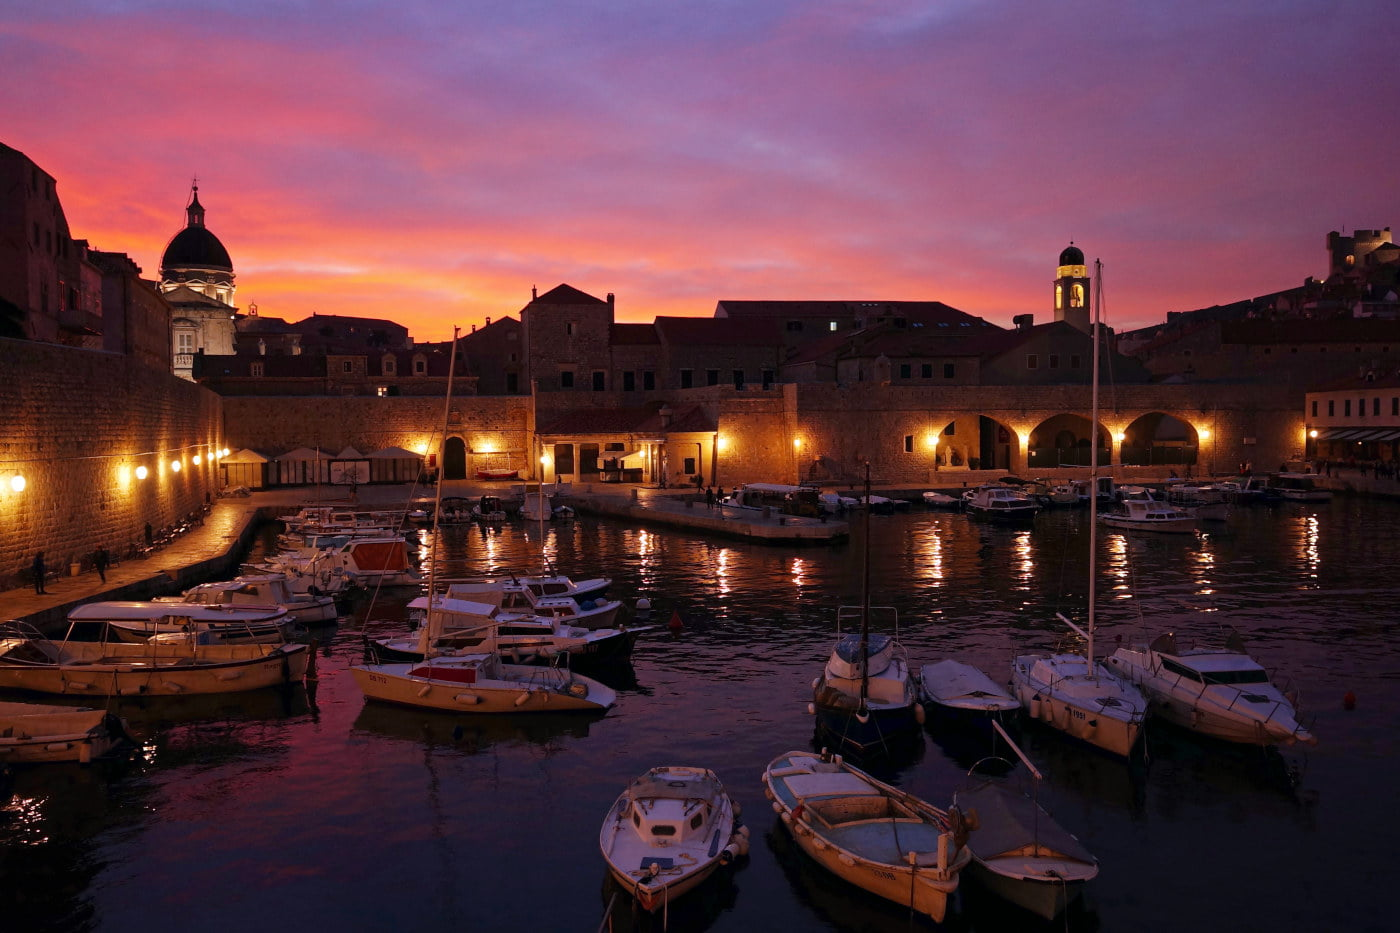 Atmosphere, culture and architecture of Dubrovnik